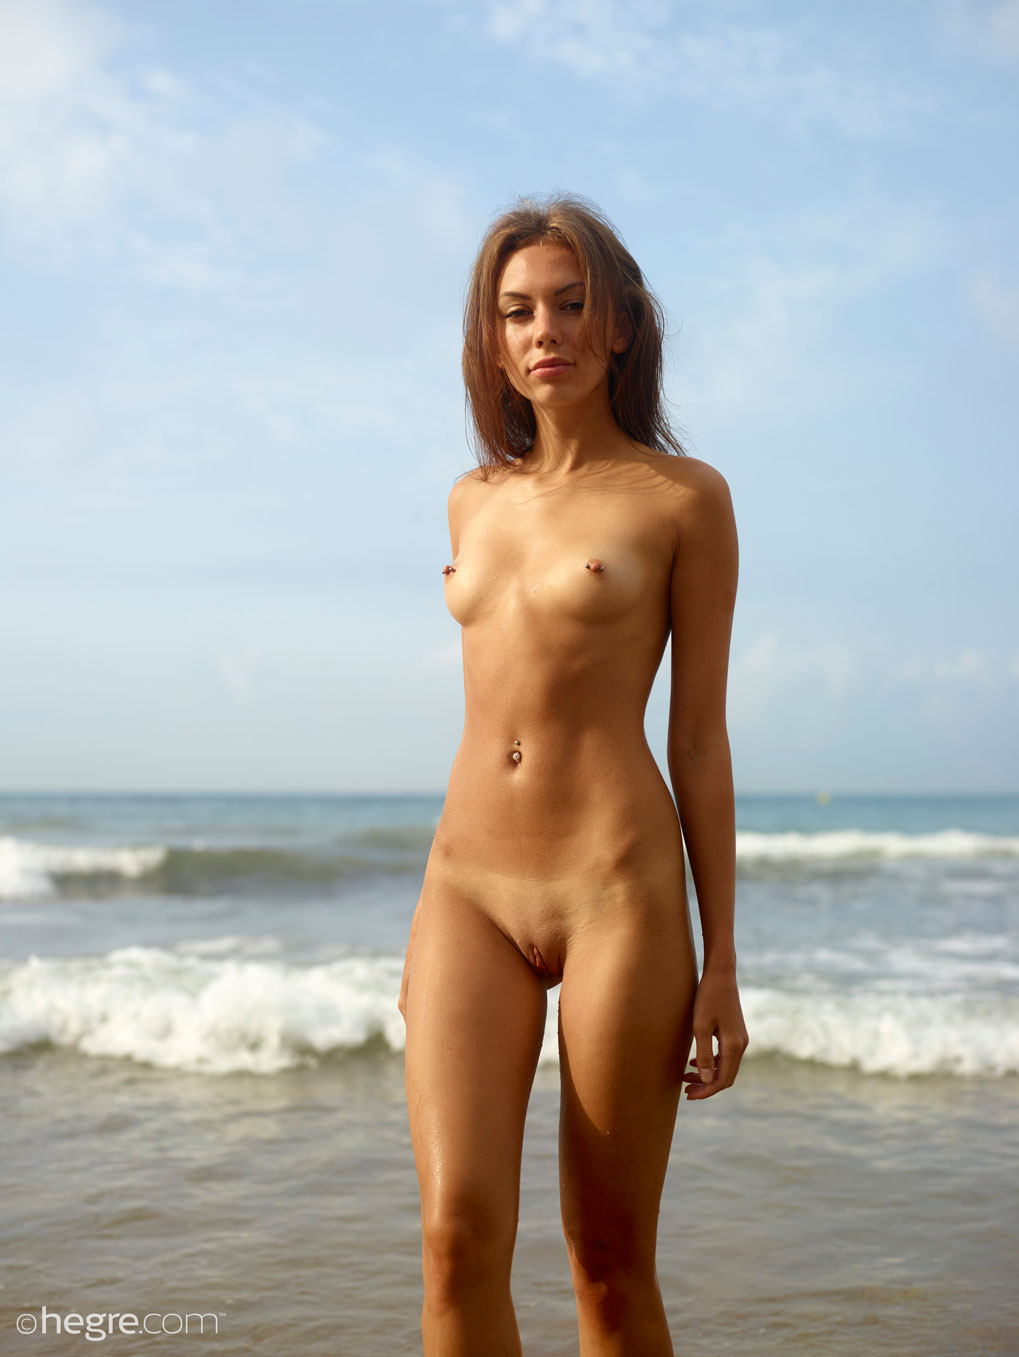 Sexy Women Nude Beach